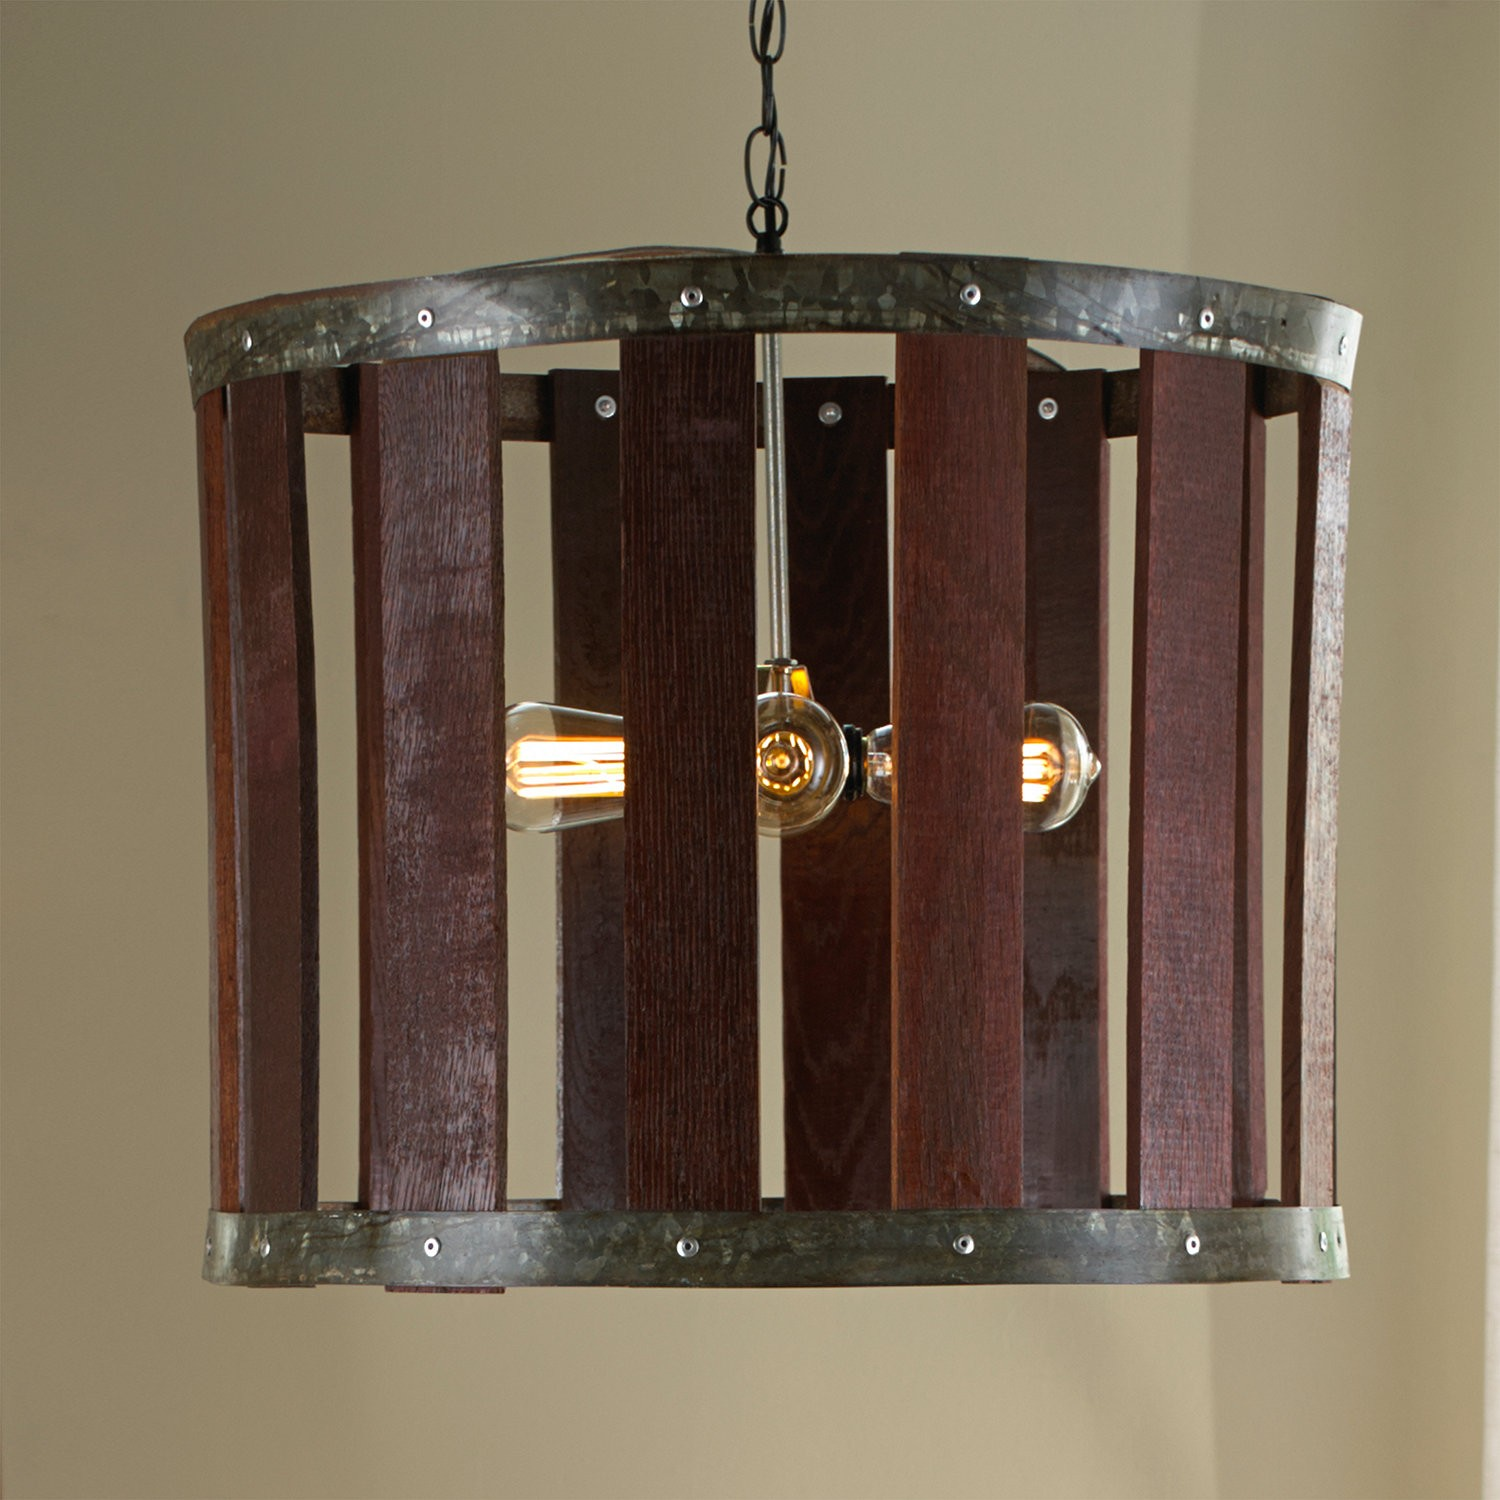 Wooden Wine Barrel Chandelier